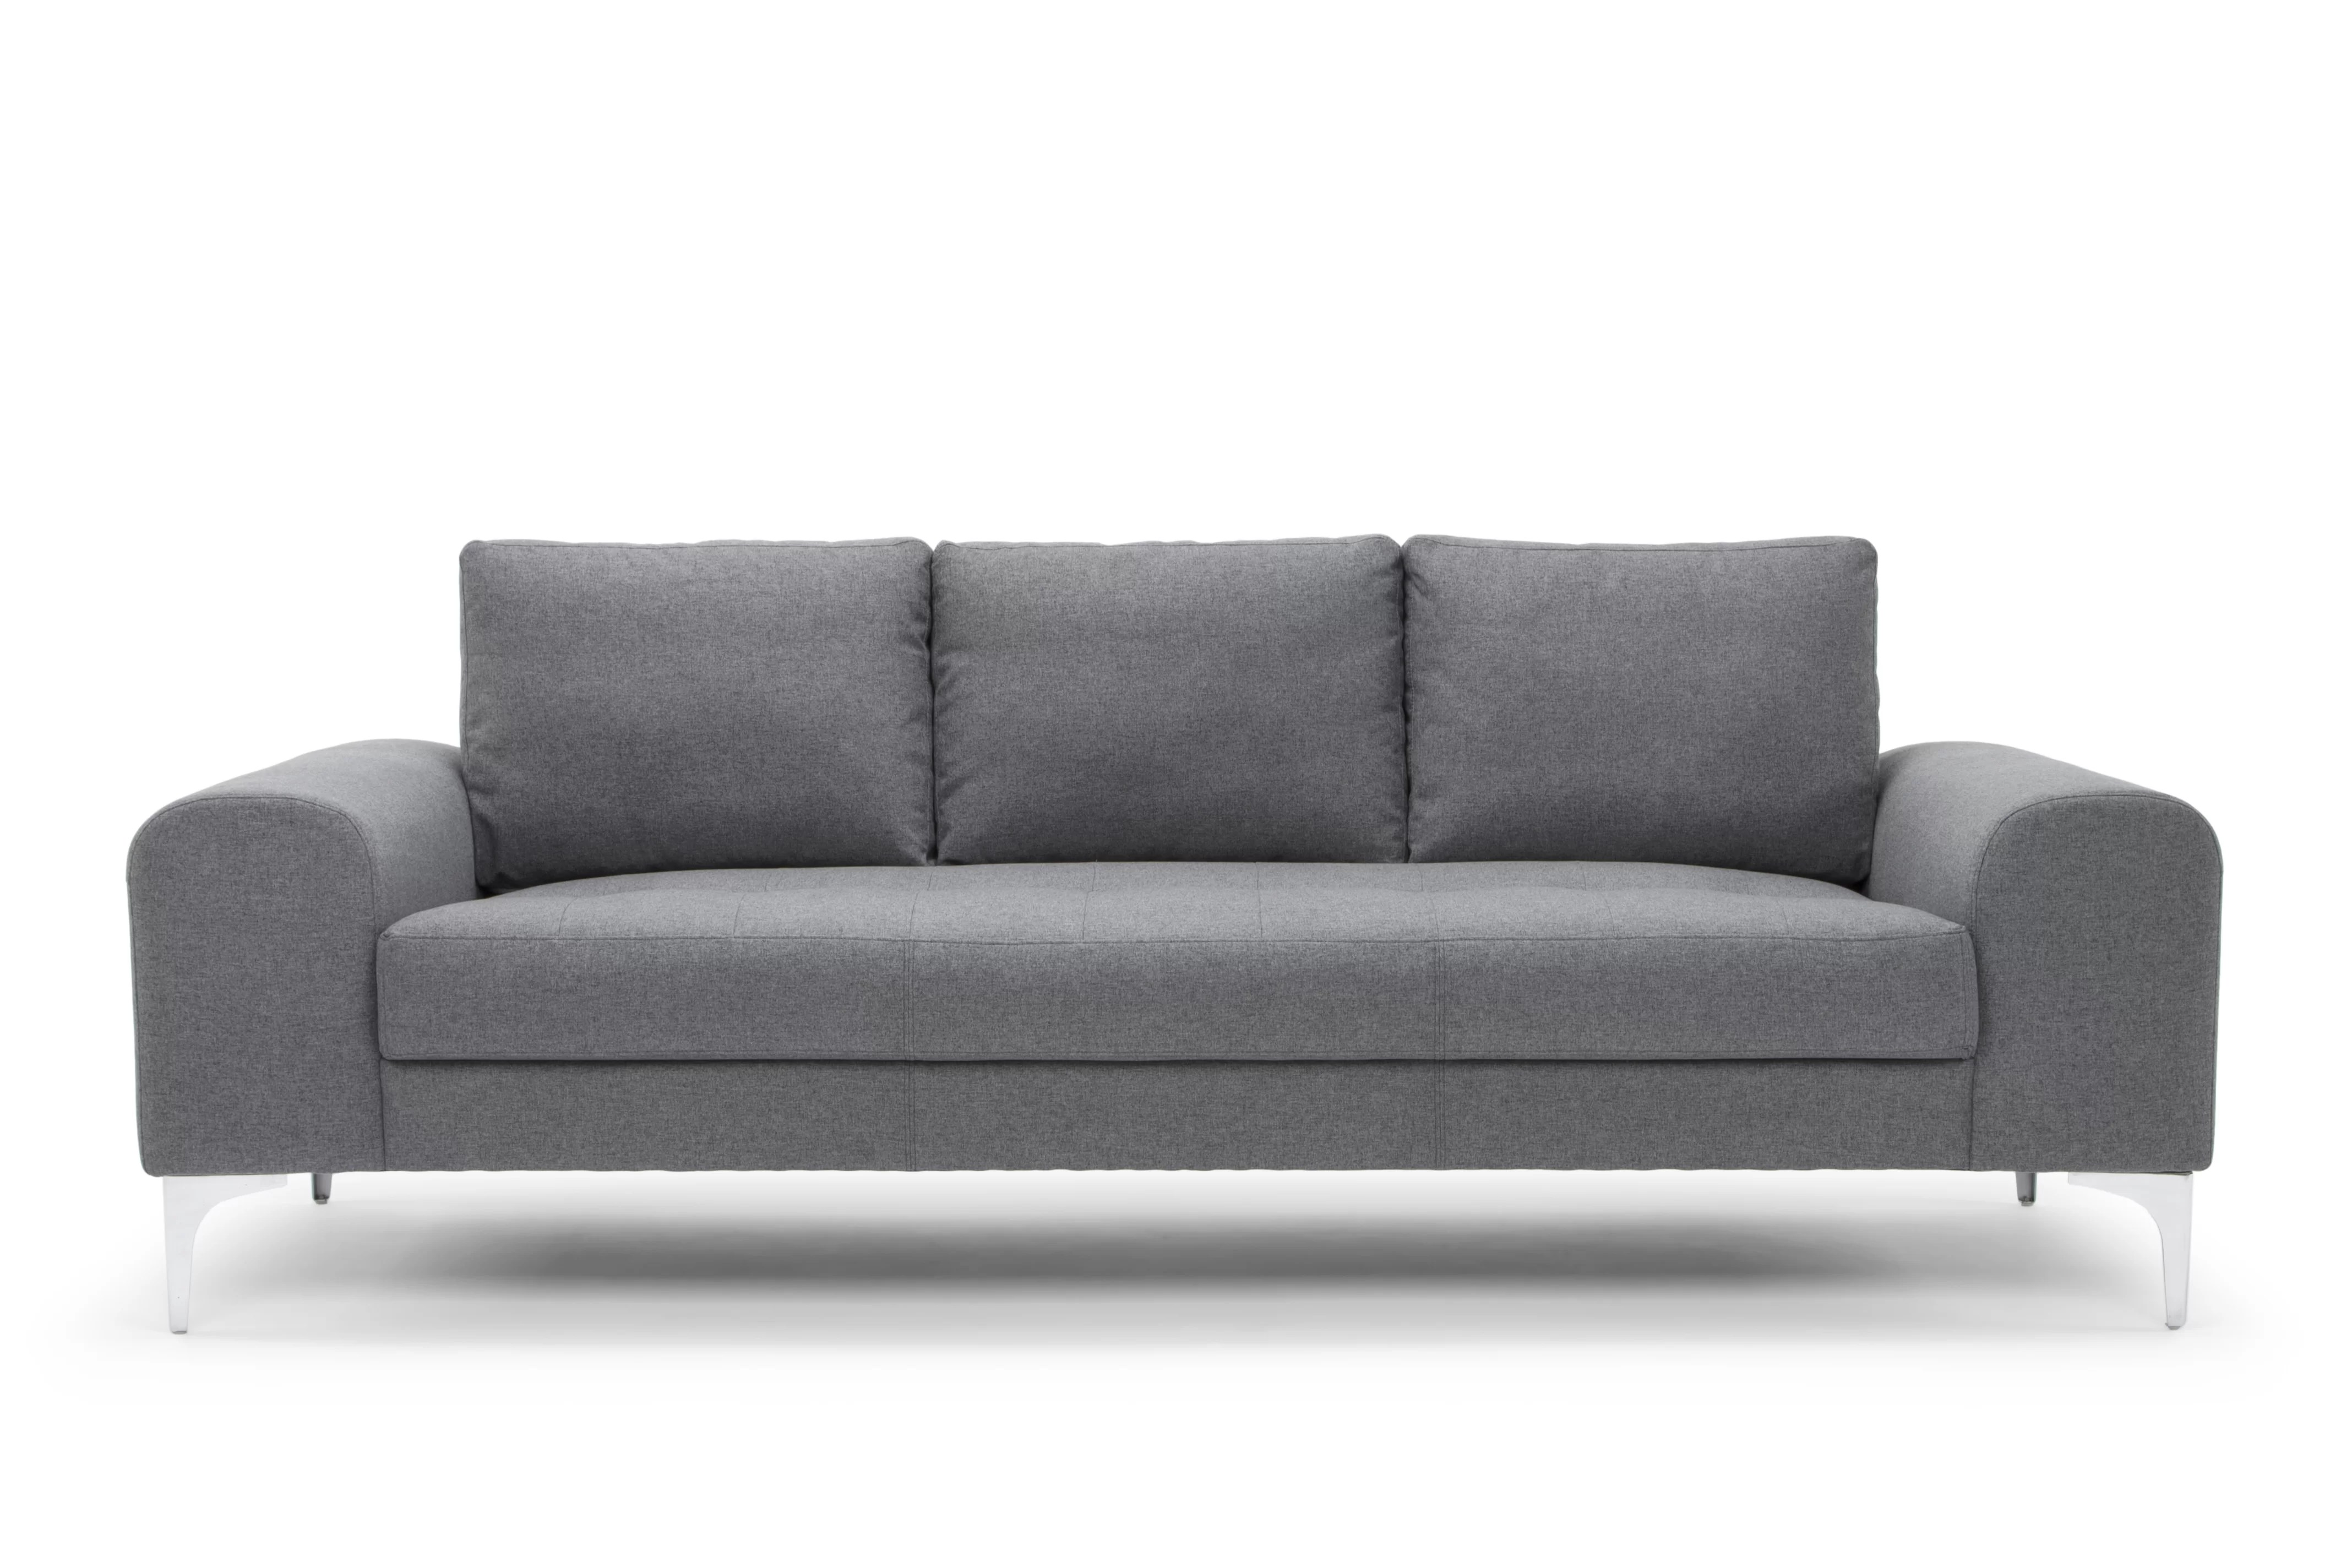 Couch Mit Bettfunktion Iroh Sofa